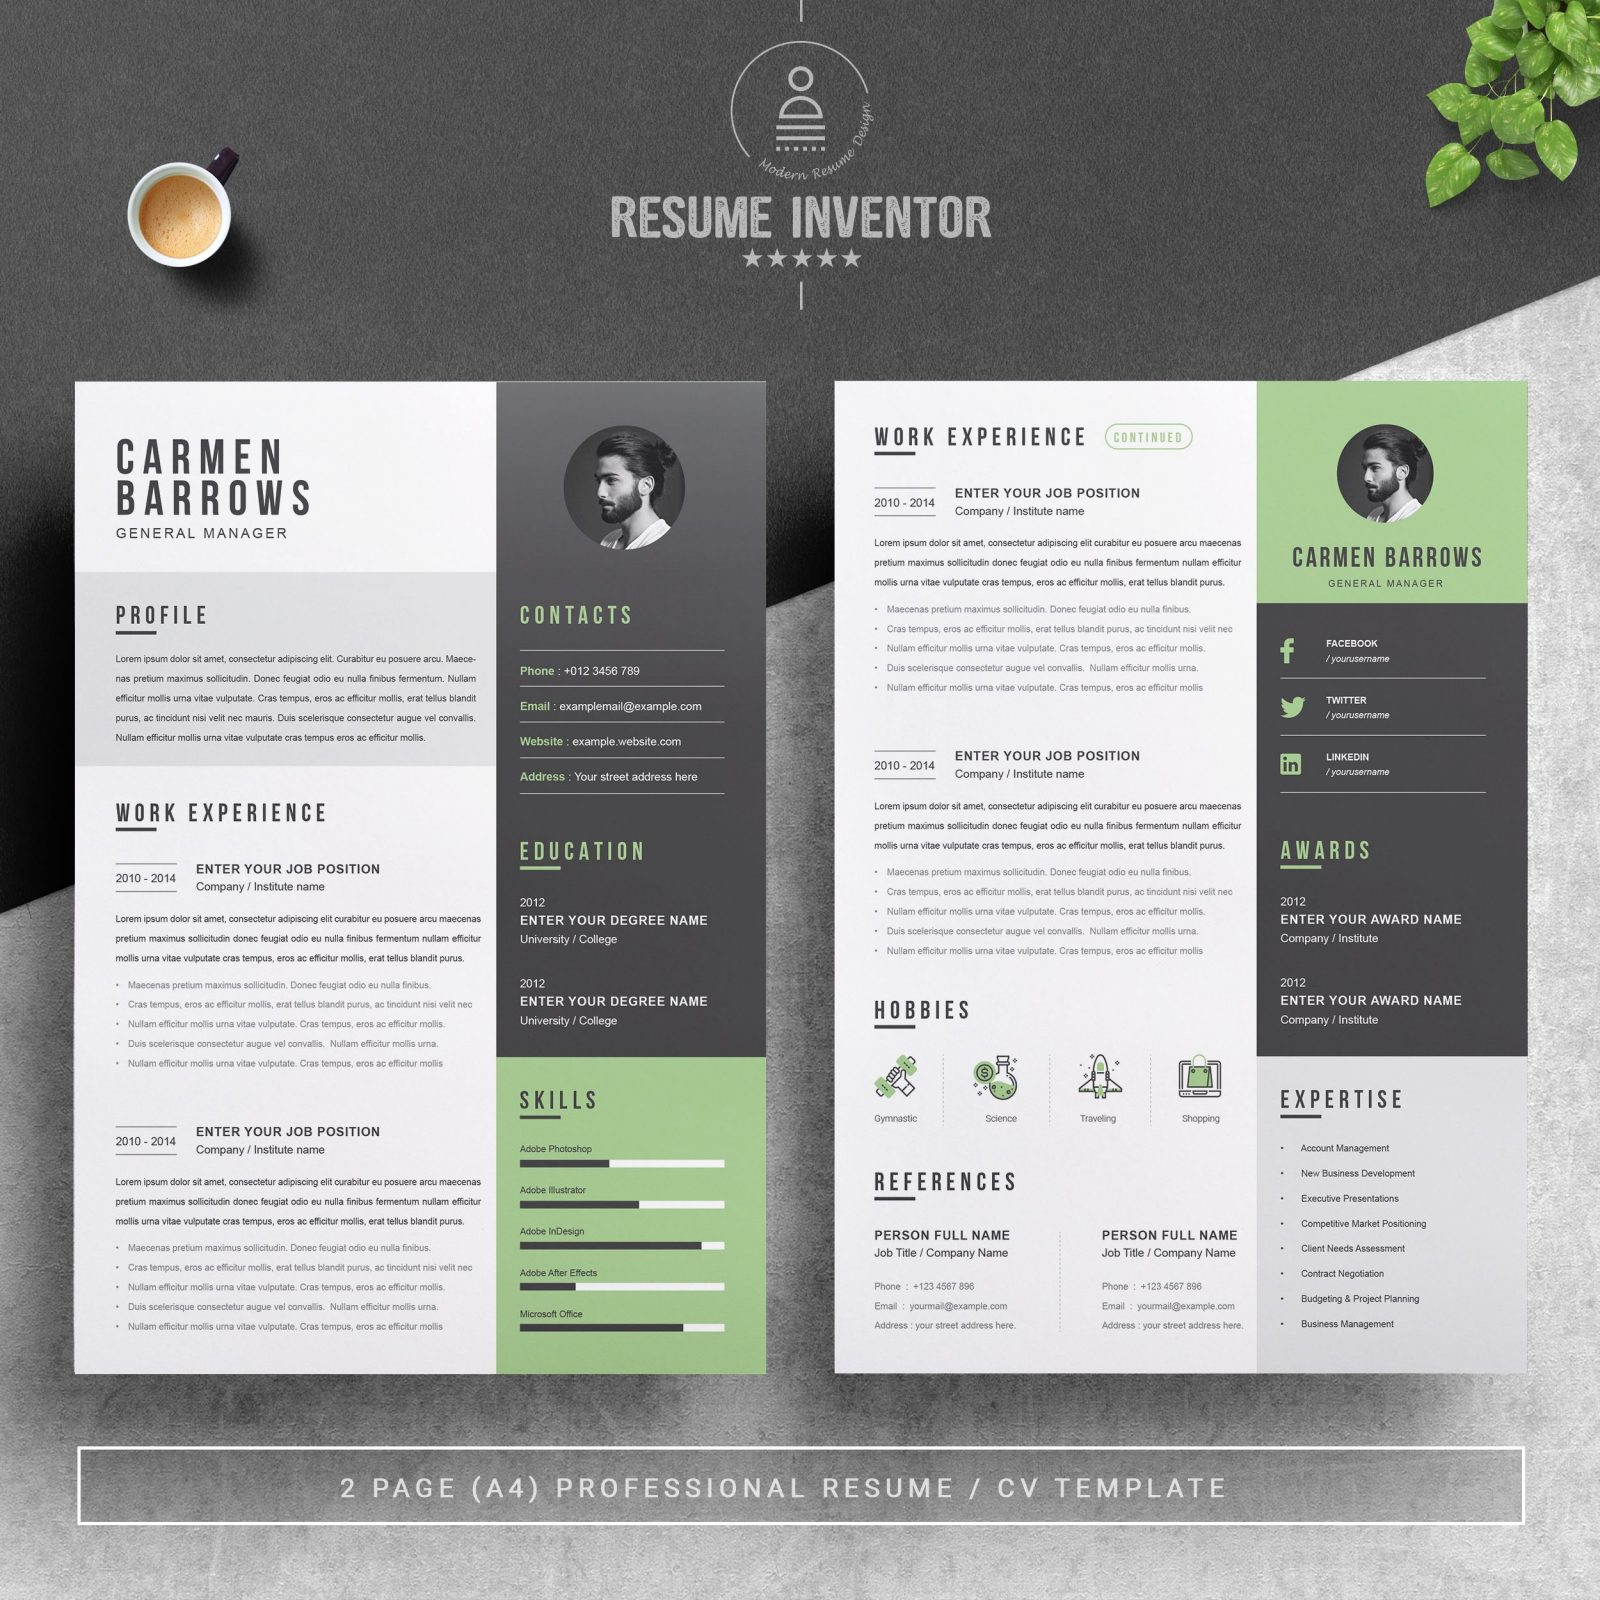 best free resume templates for architects arch2o make and print 1600x1600 campaign Resume Make And Print Resume For Free